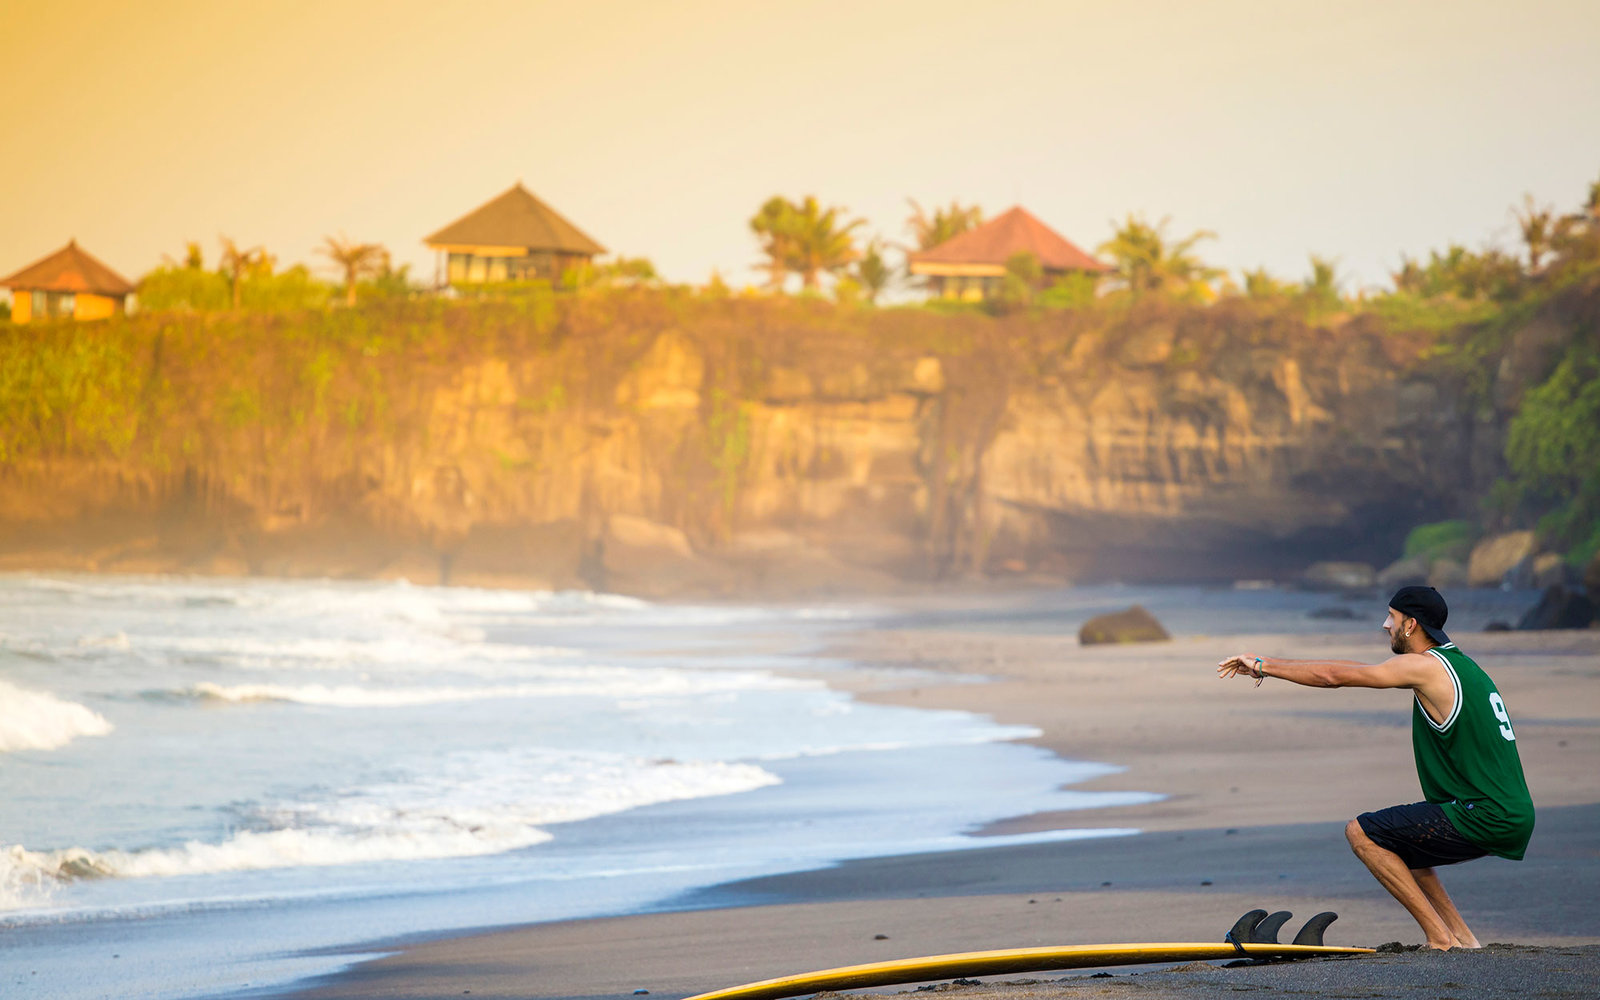 Indonesia, Bali, surfer on the beach doing a knee bend